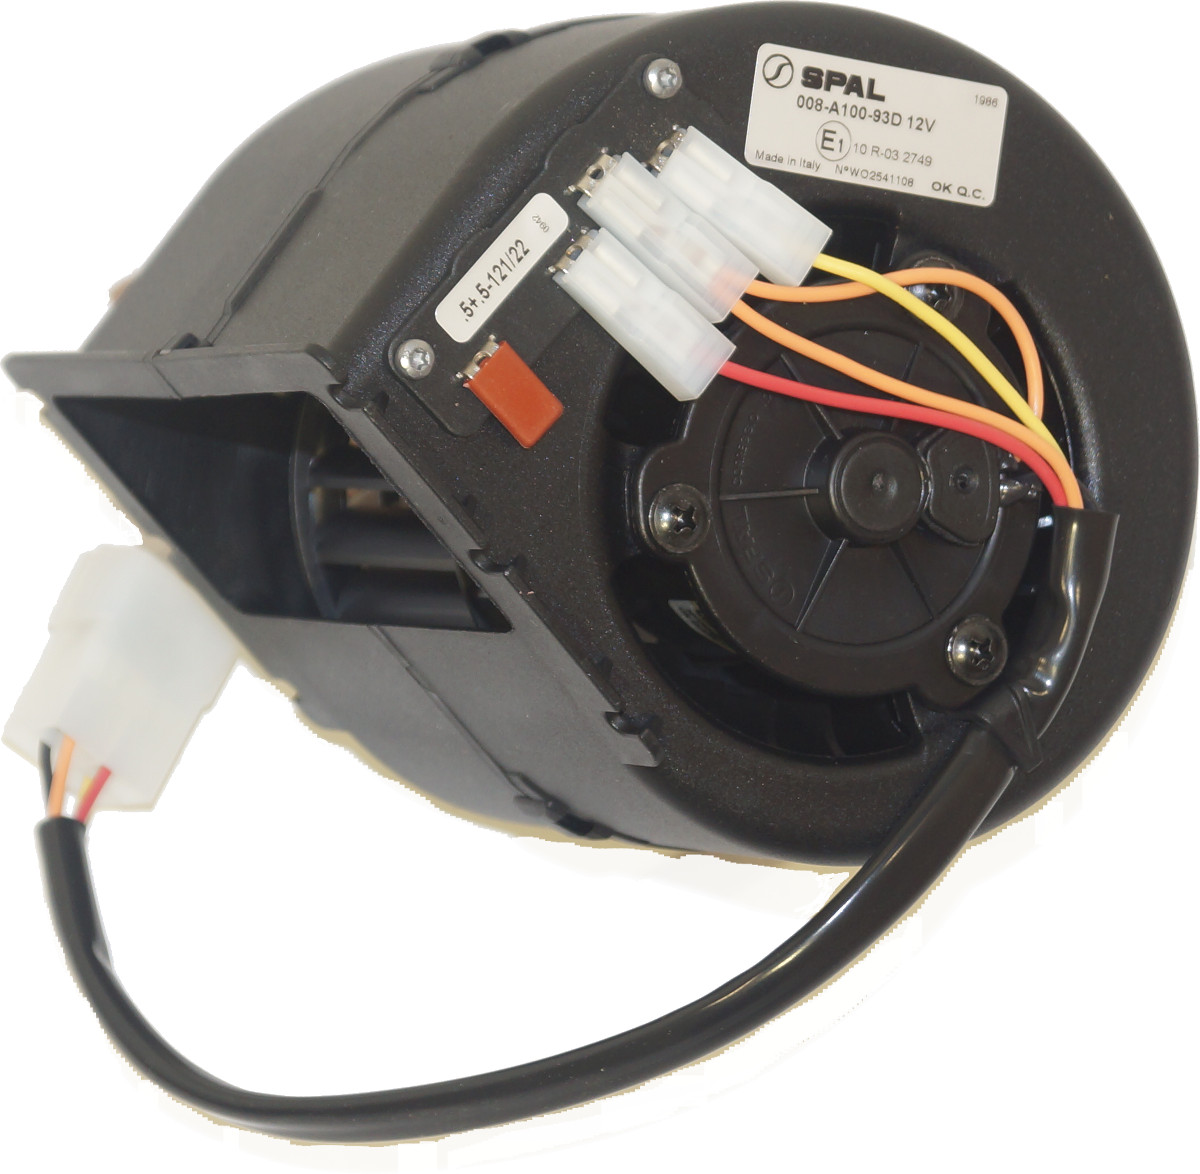 Low Profile Blower : Spal low profile speed blower volt